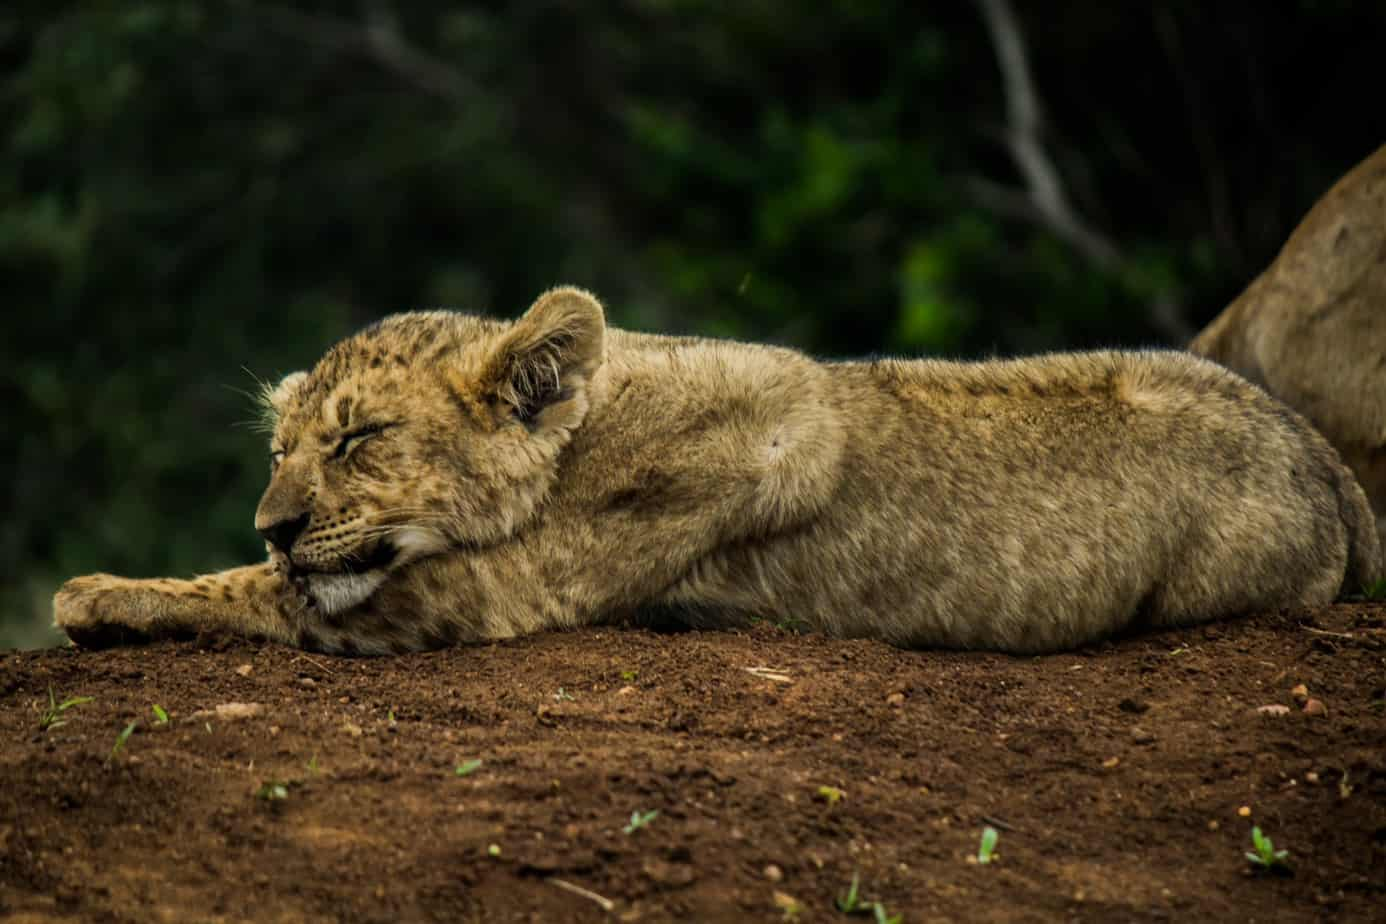 IMG 1155 - My African Top 5 - Photography Moments